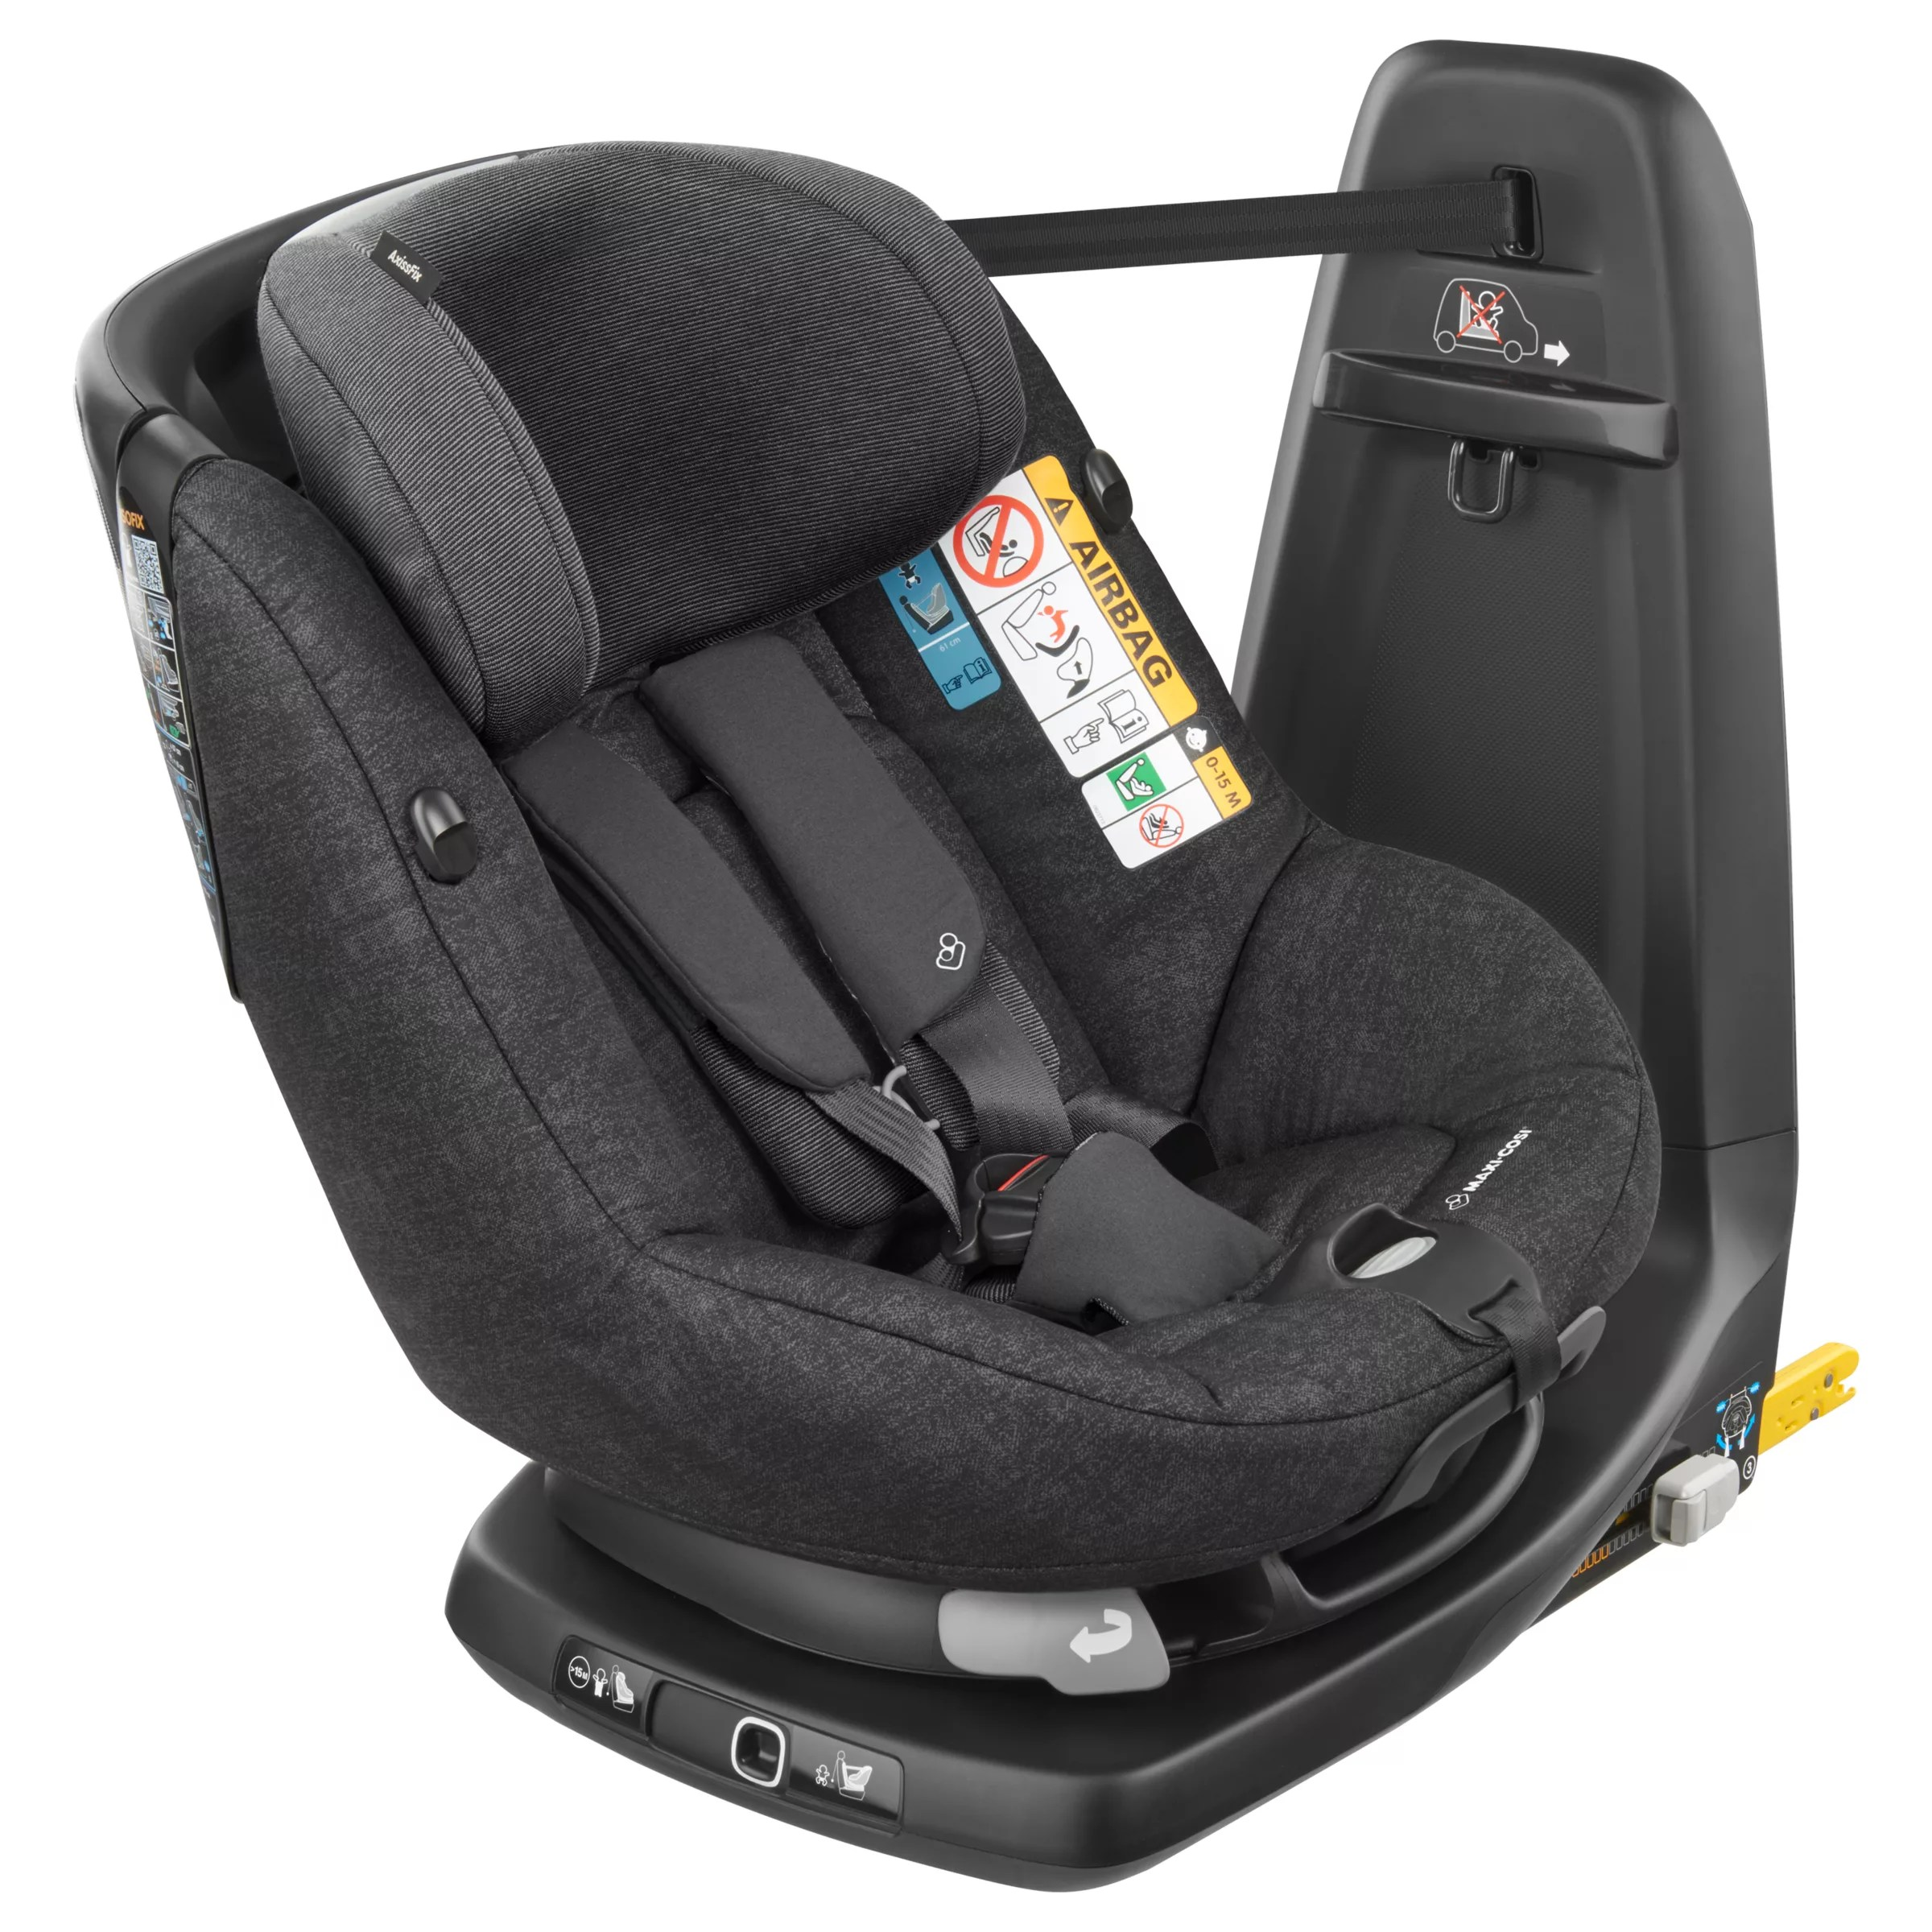 Maxi Cosi Baby Car Seat How To Install Maxi Cosi Axissfix Group 1 I Size Car Seat Nomad Black